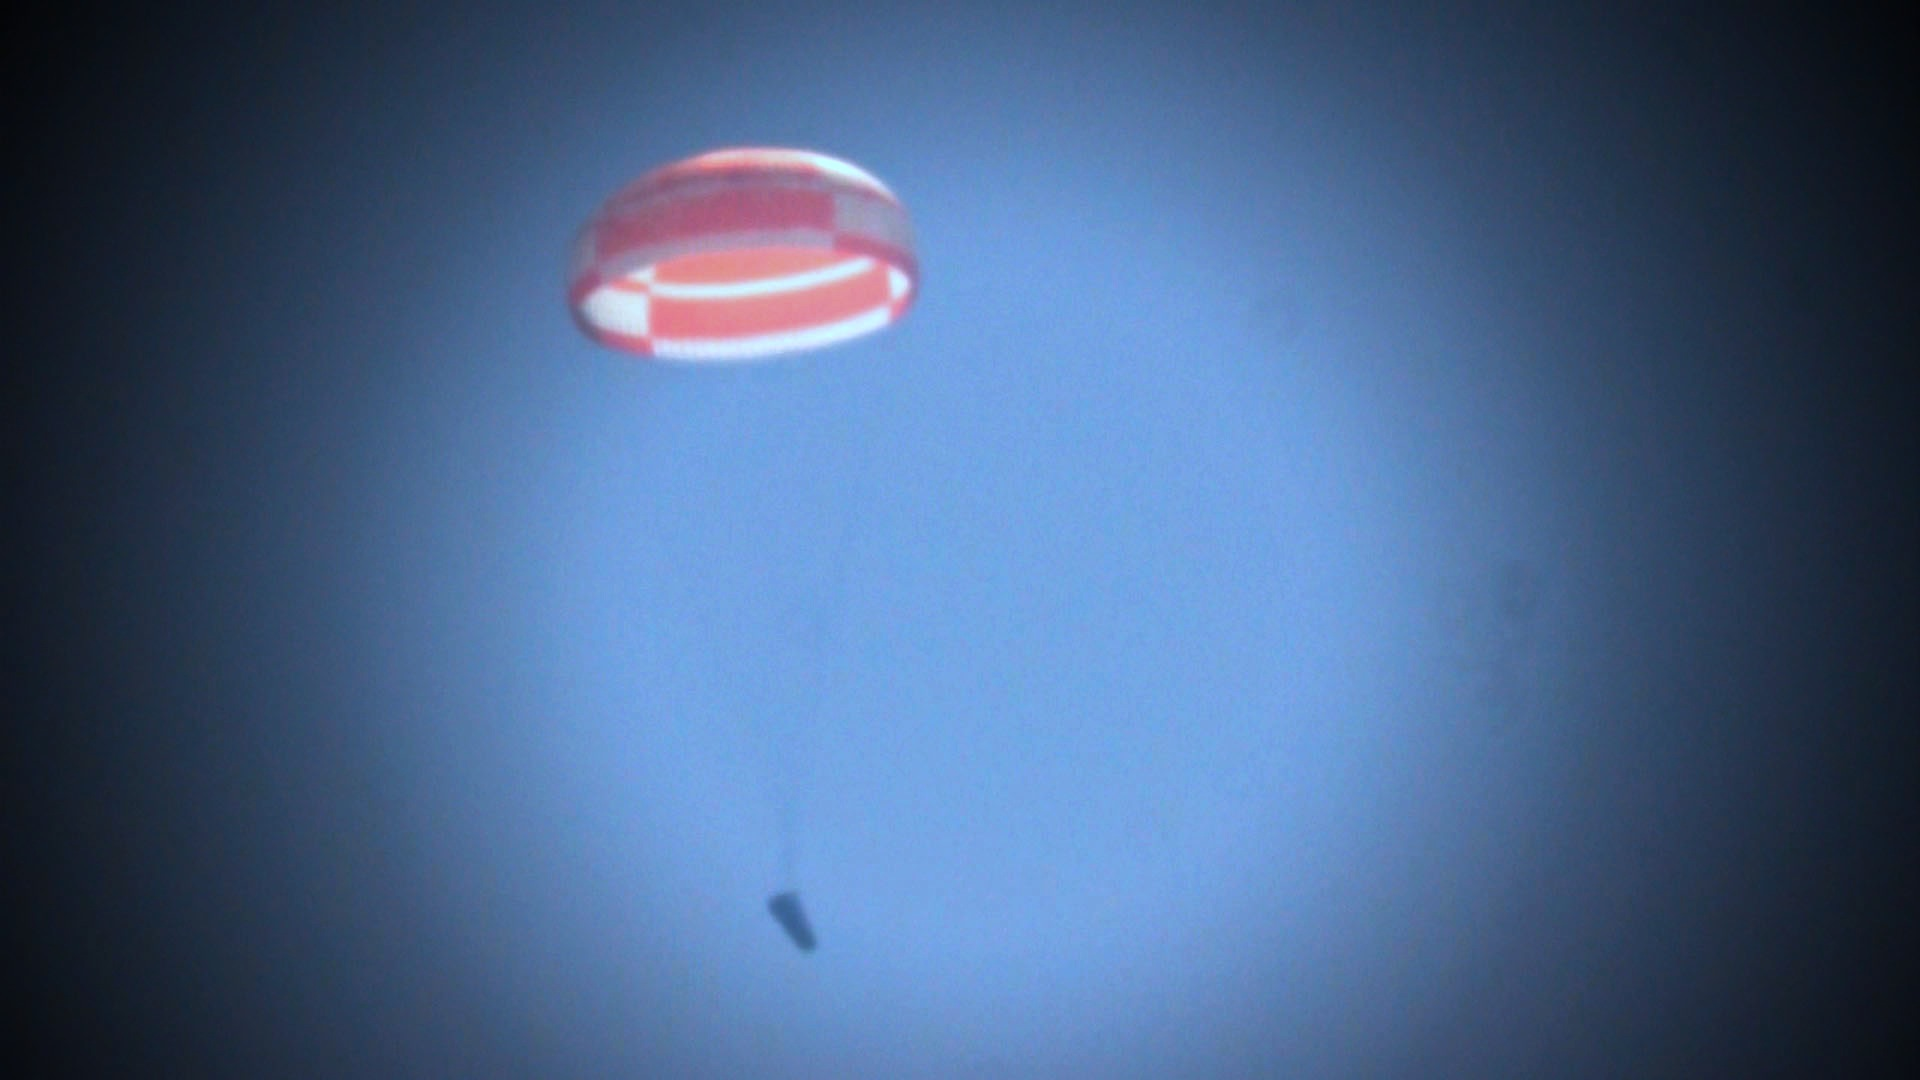 Europe's IXV Spacecraft Drop Test